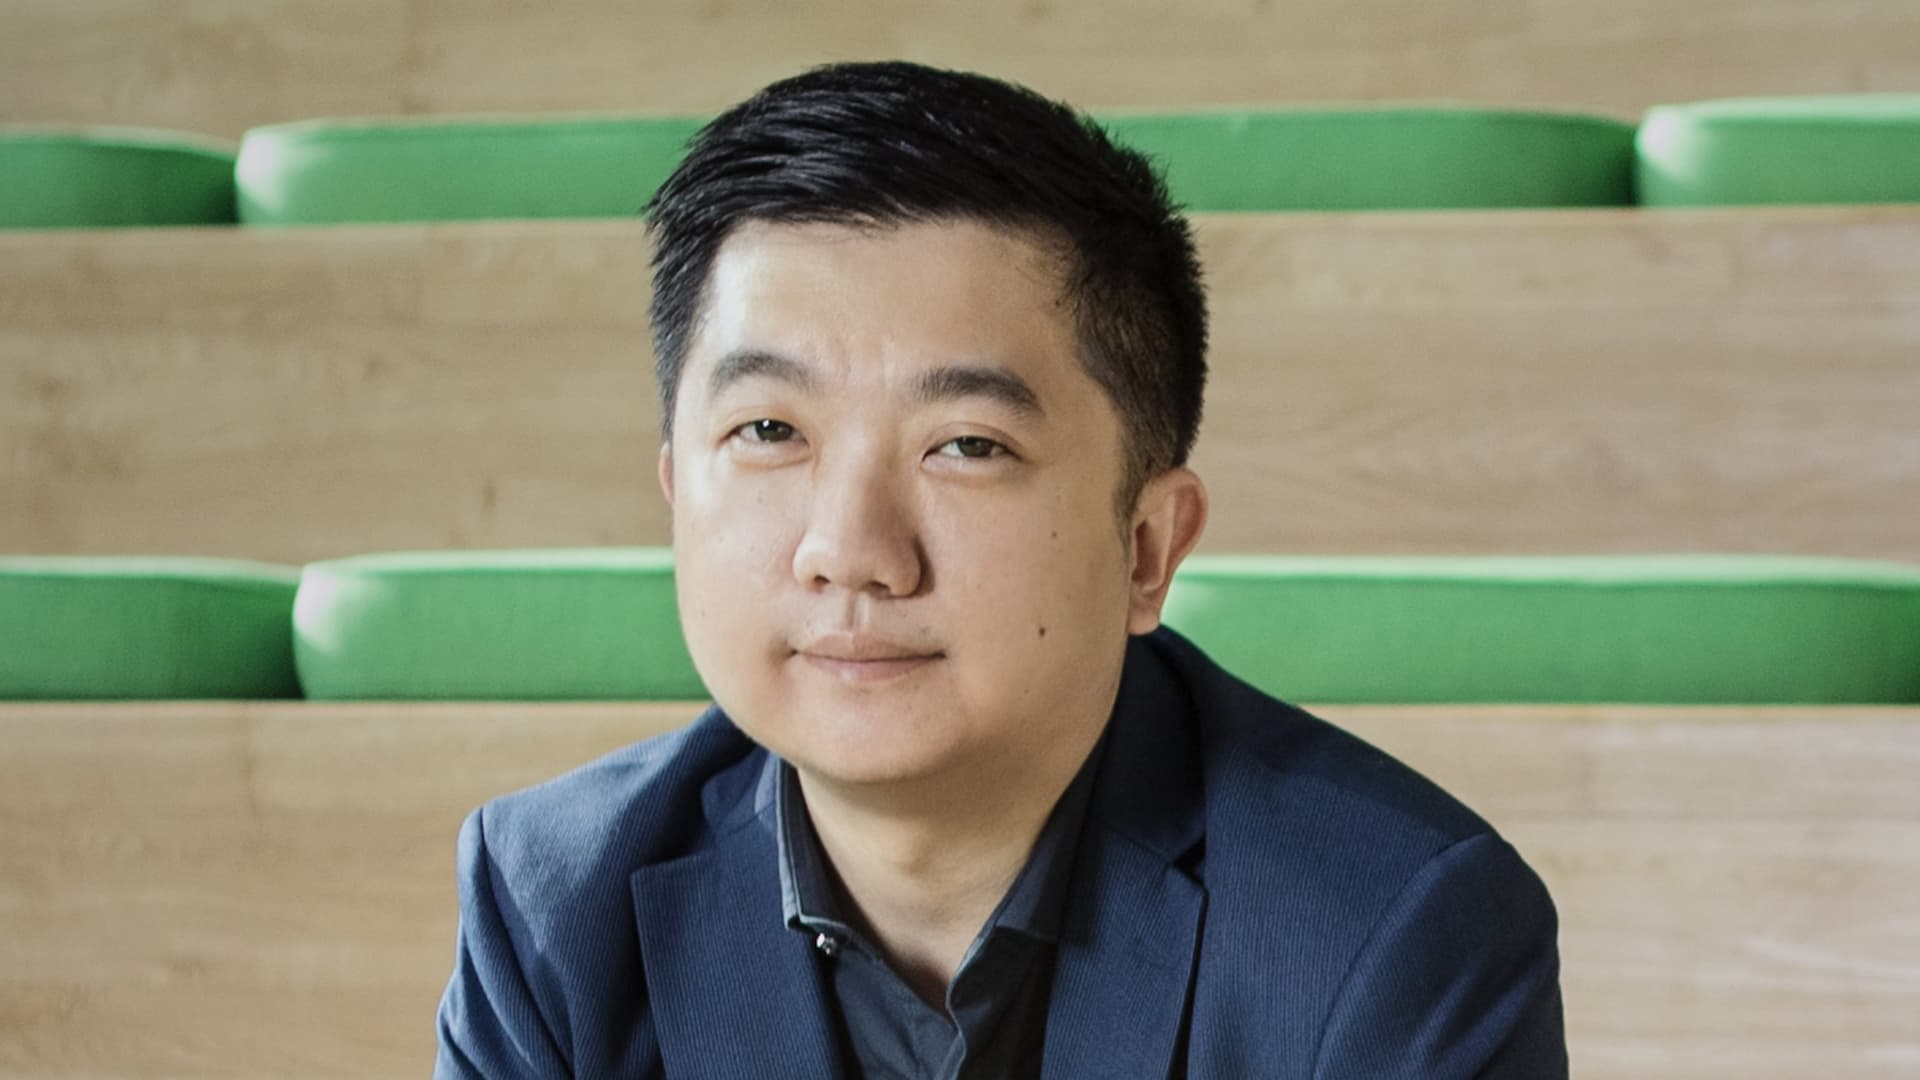 William Tanuwijaya, co-founder and CEO of Tokopedia, part of Indonesian tech giant GoTo.